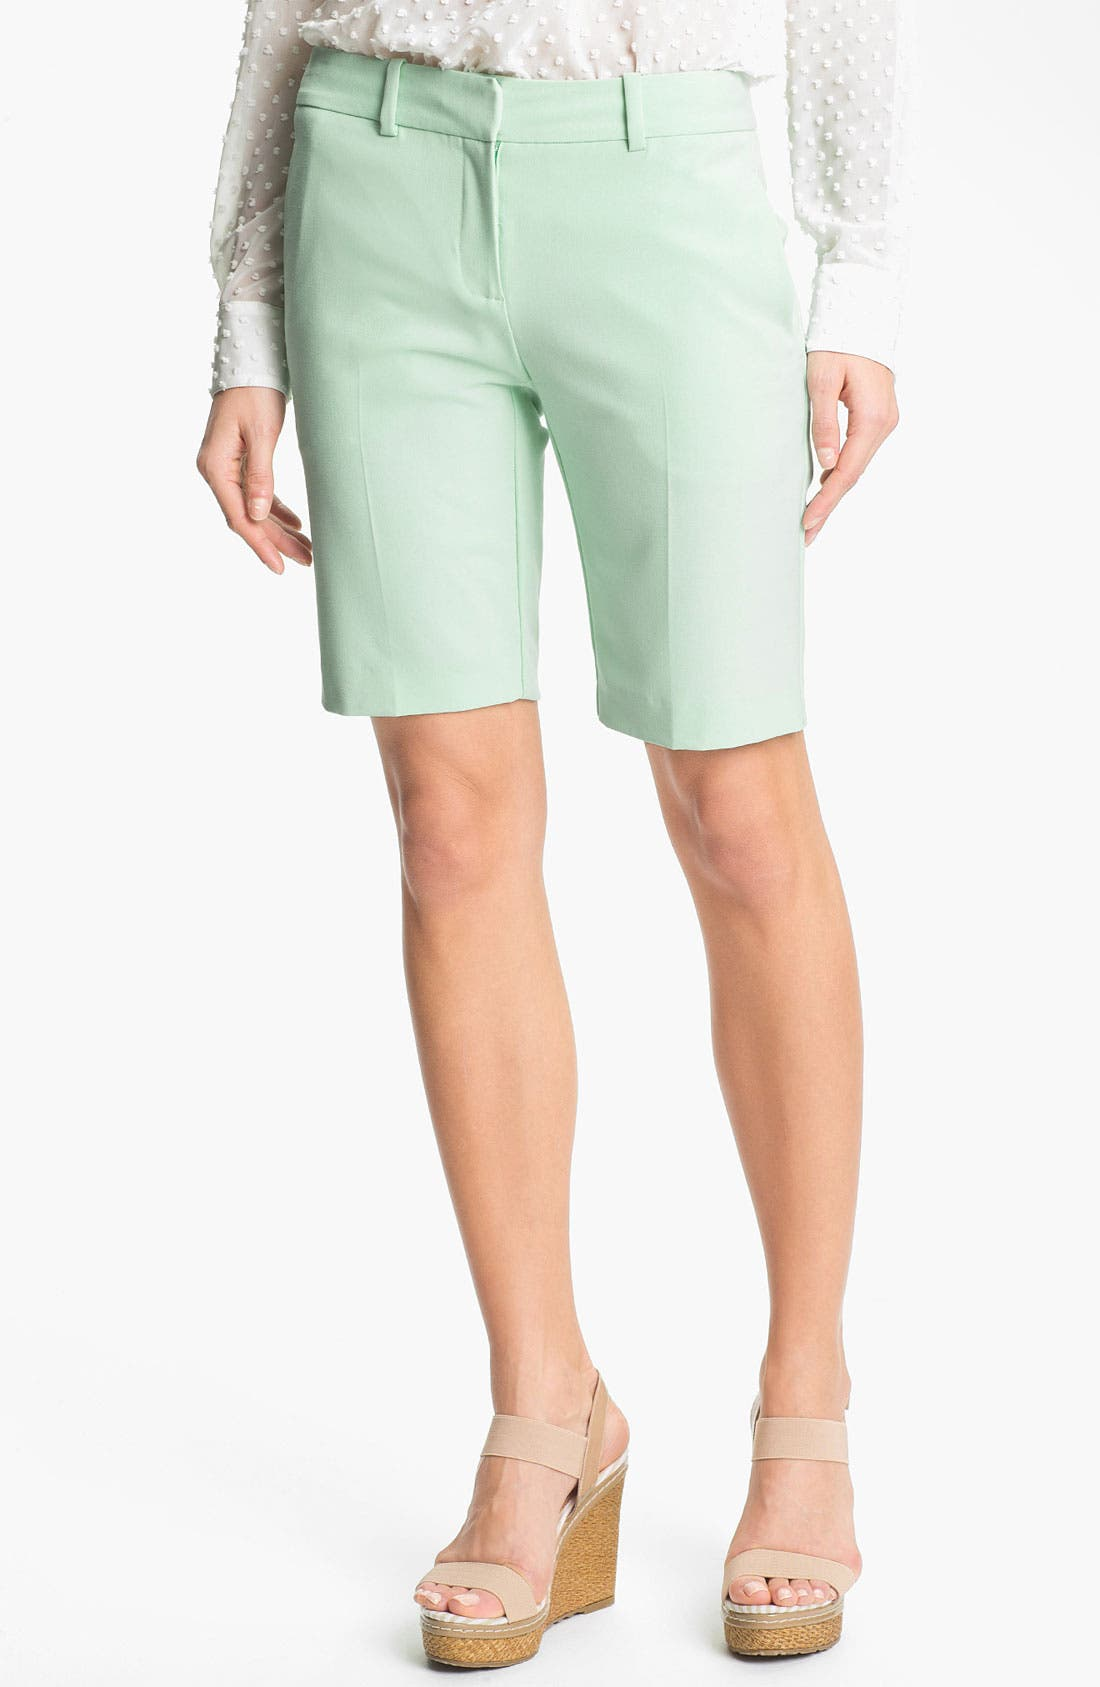 Bermuda Shorts,                             Main thumbnail 1, color,                             New Mint